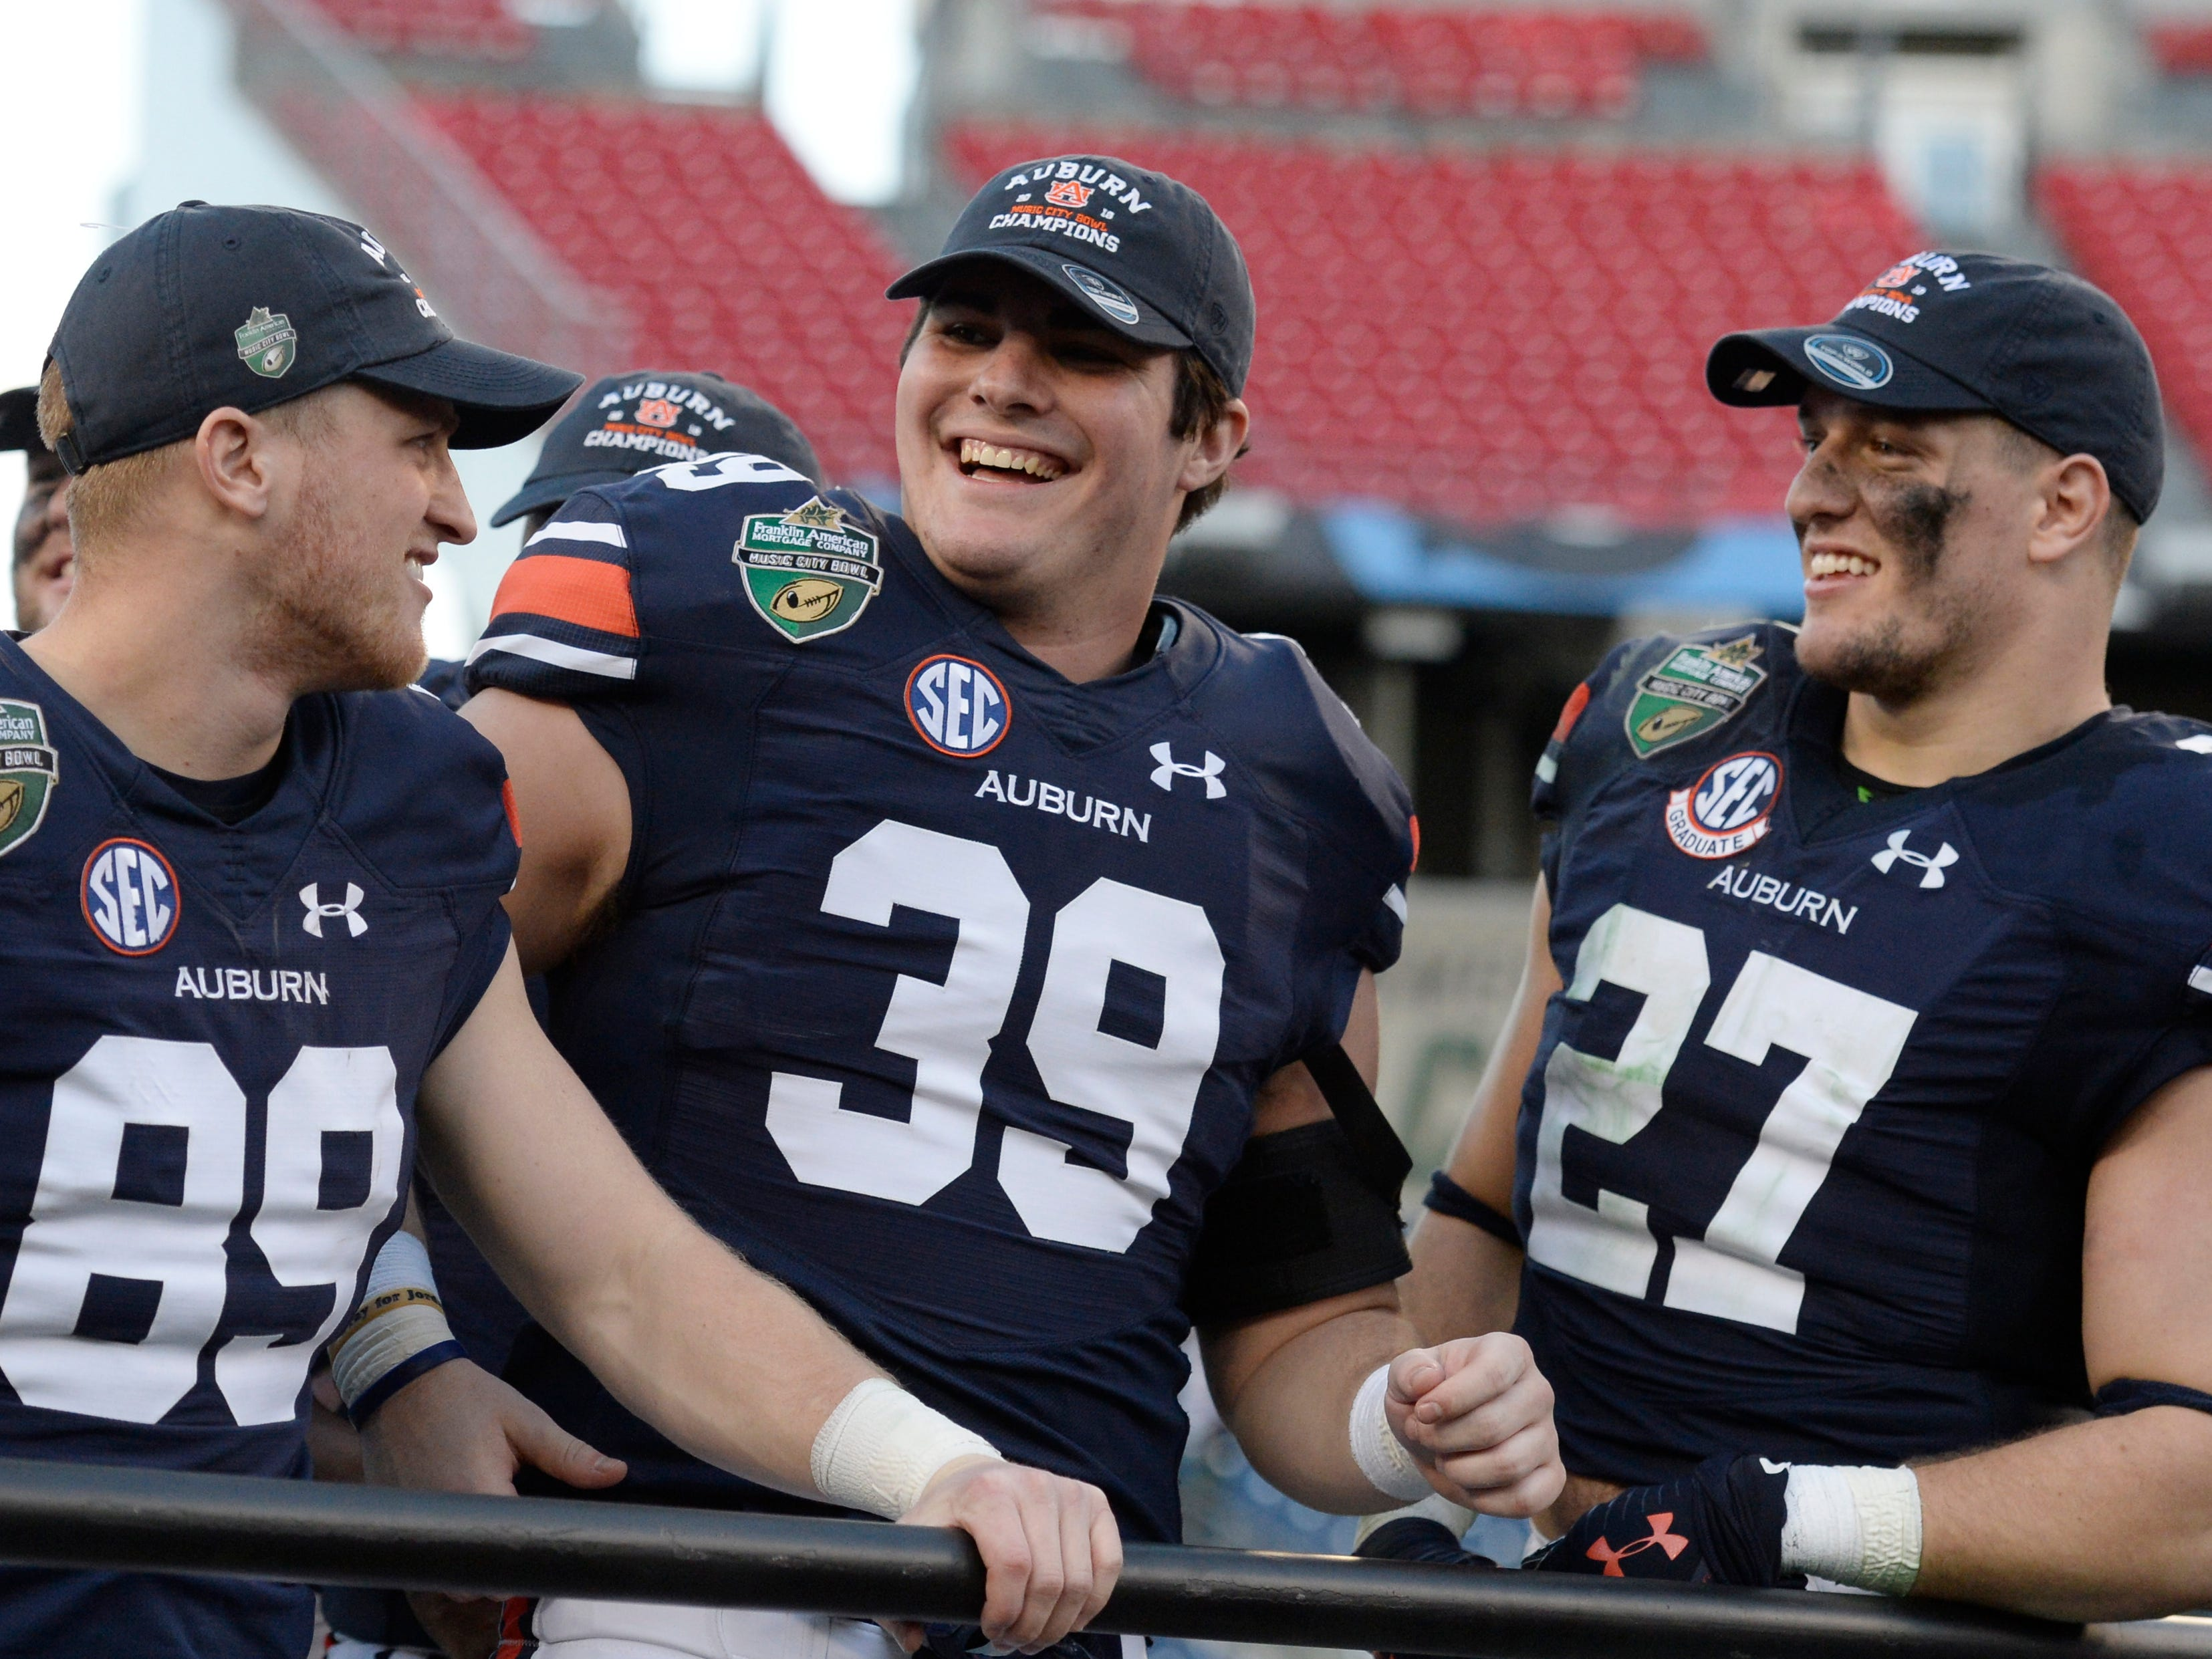 Auburn wide receiver Griffin King (89), tight end Robert Muschamp (39) and Chandler Cox (27) celebrate while waiting for the trophy presentation after the team's 63-14 win over Purdue in the Music City Bowl NCAA college football game Friday, Dec. 28, 2018, at Nissan Stadium in Nashville, Tenn.